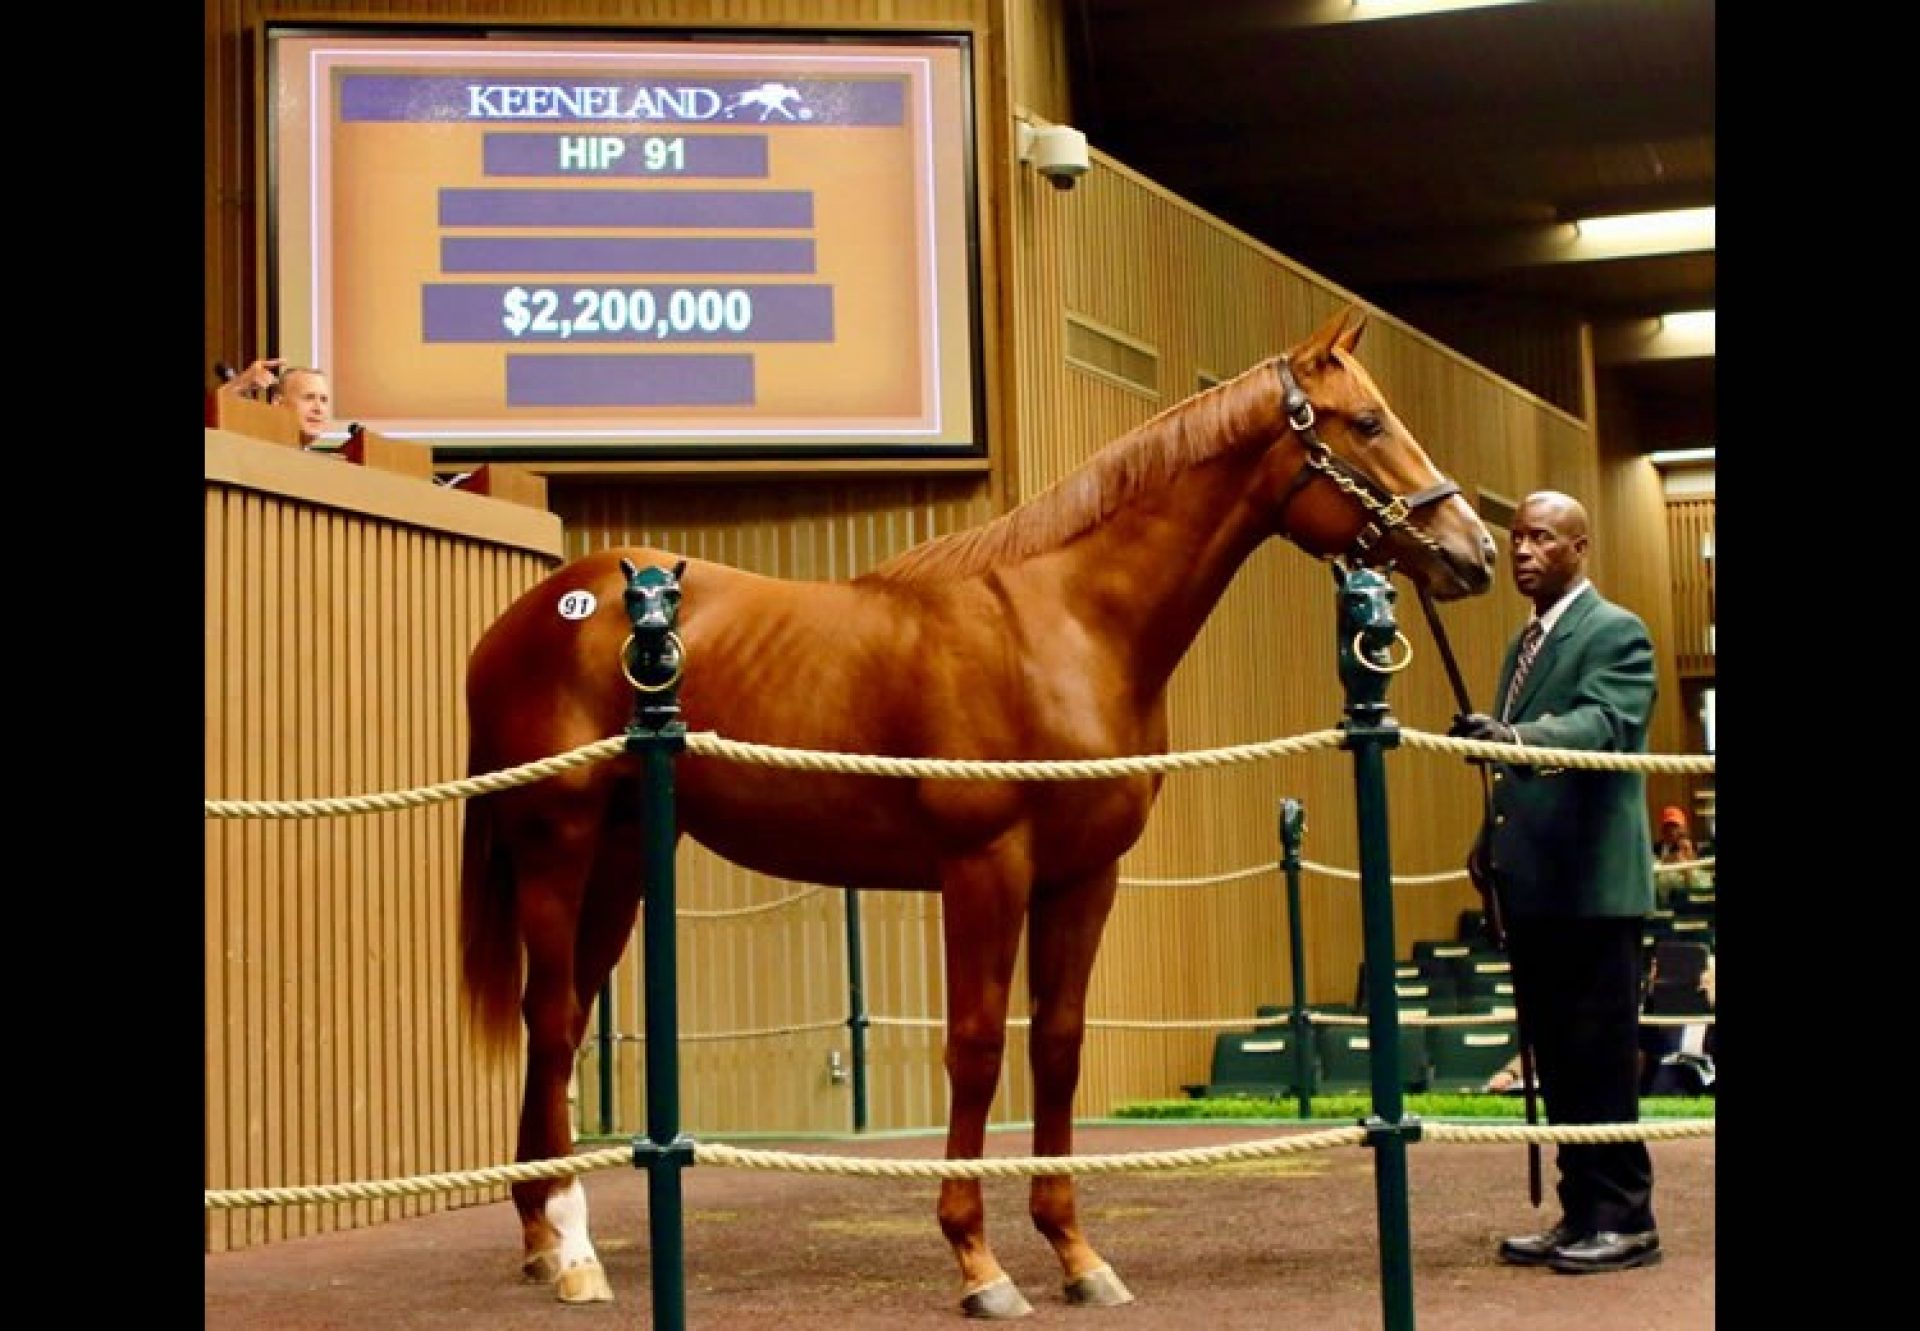 American Pharoah ex Kindle yearling colt selling for $2.2 million at Keeneland September Book 1